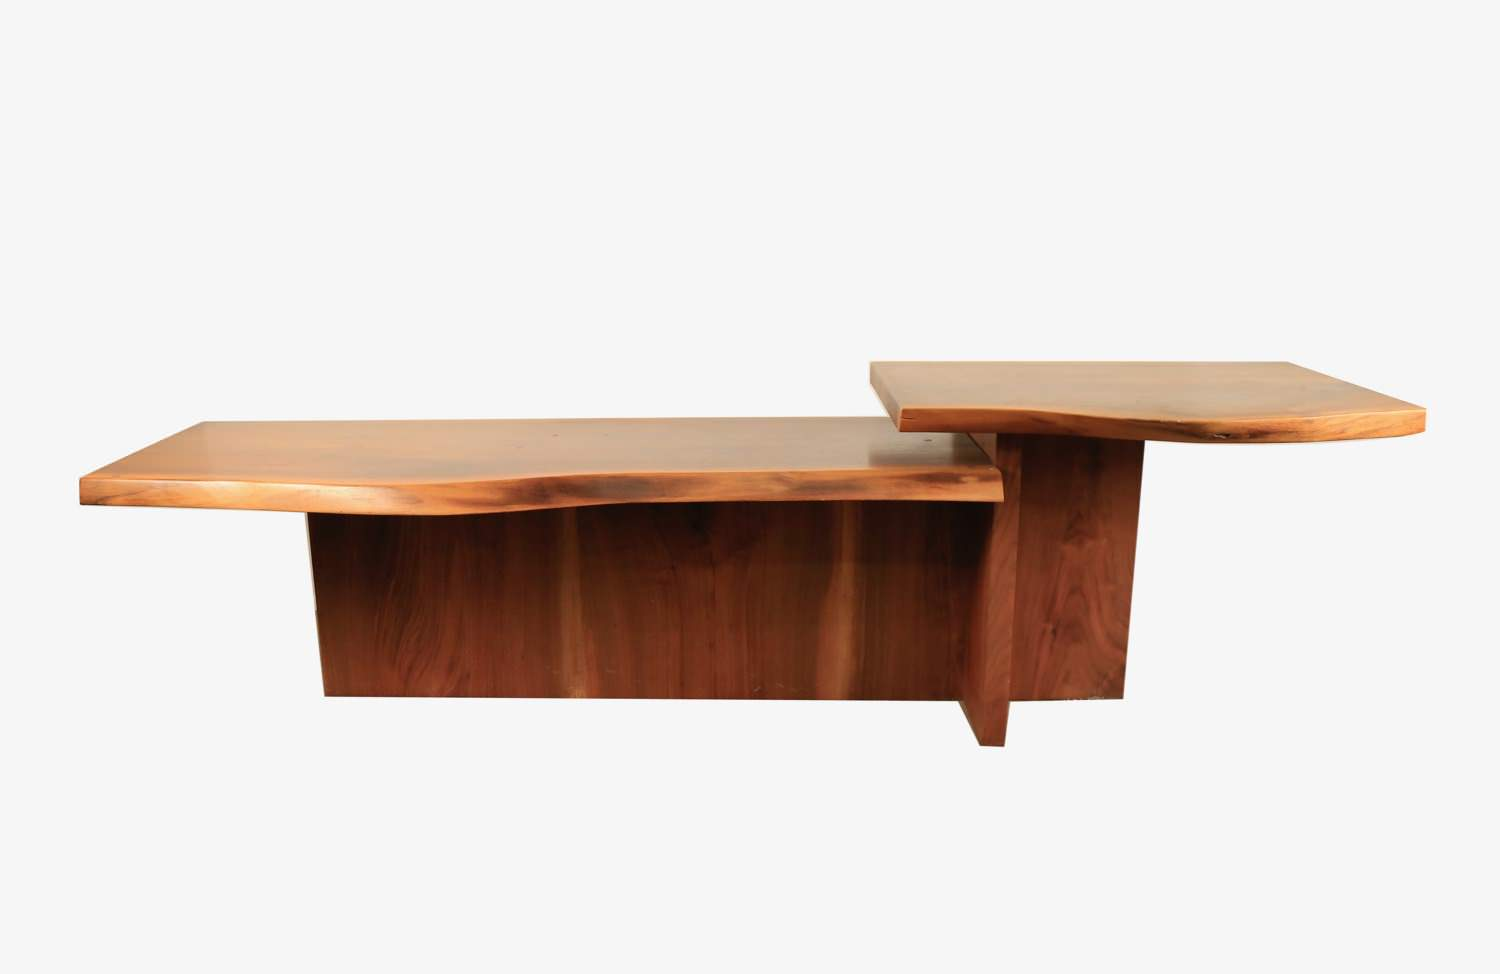 A Free Form Walnut Table, Modern, In the style of George Nakashima by 20th Century American School